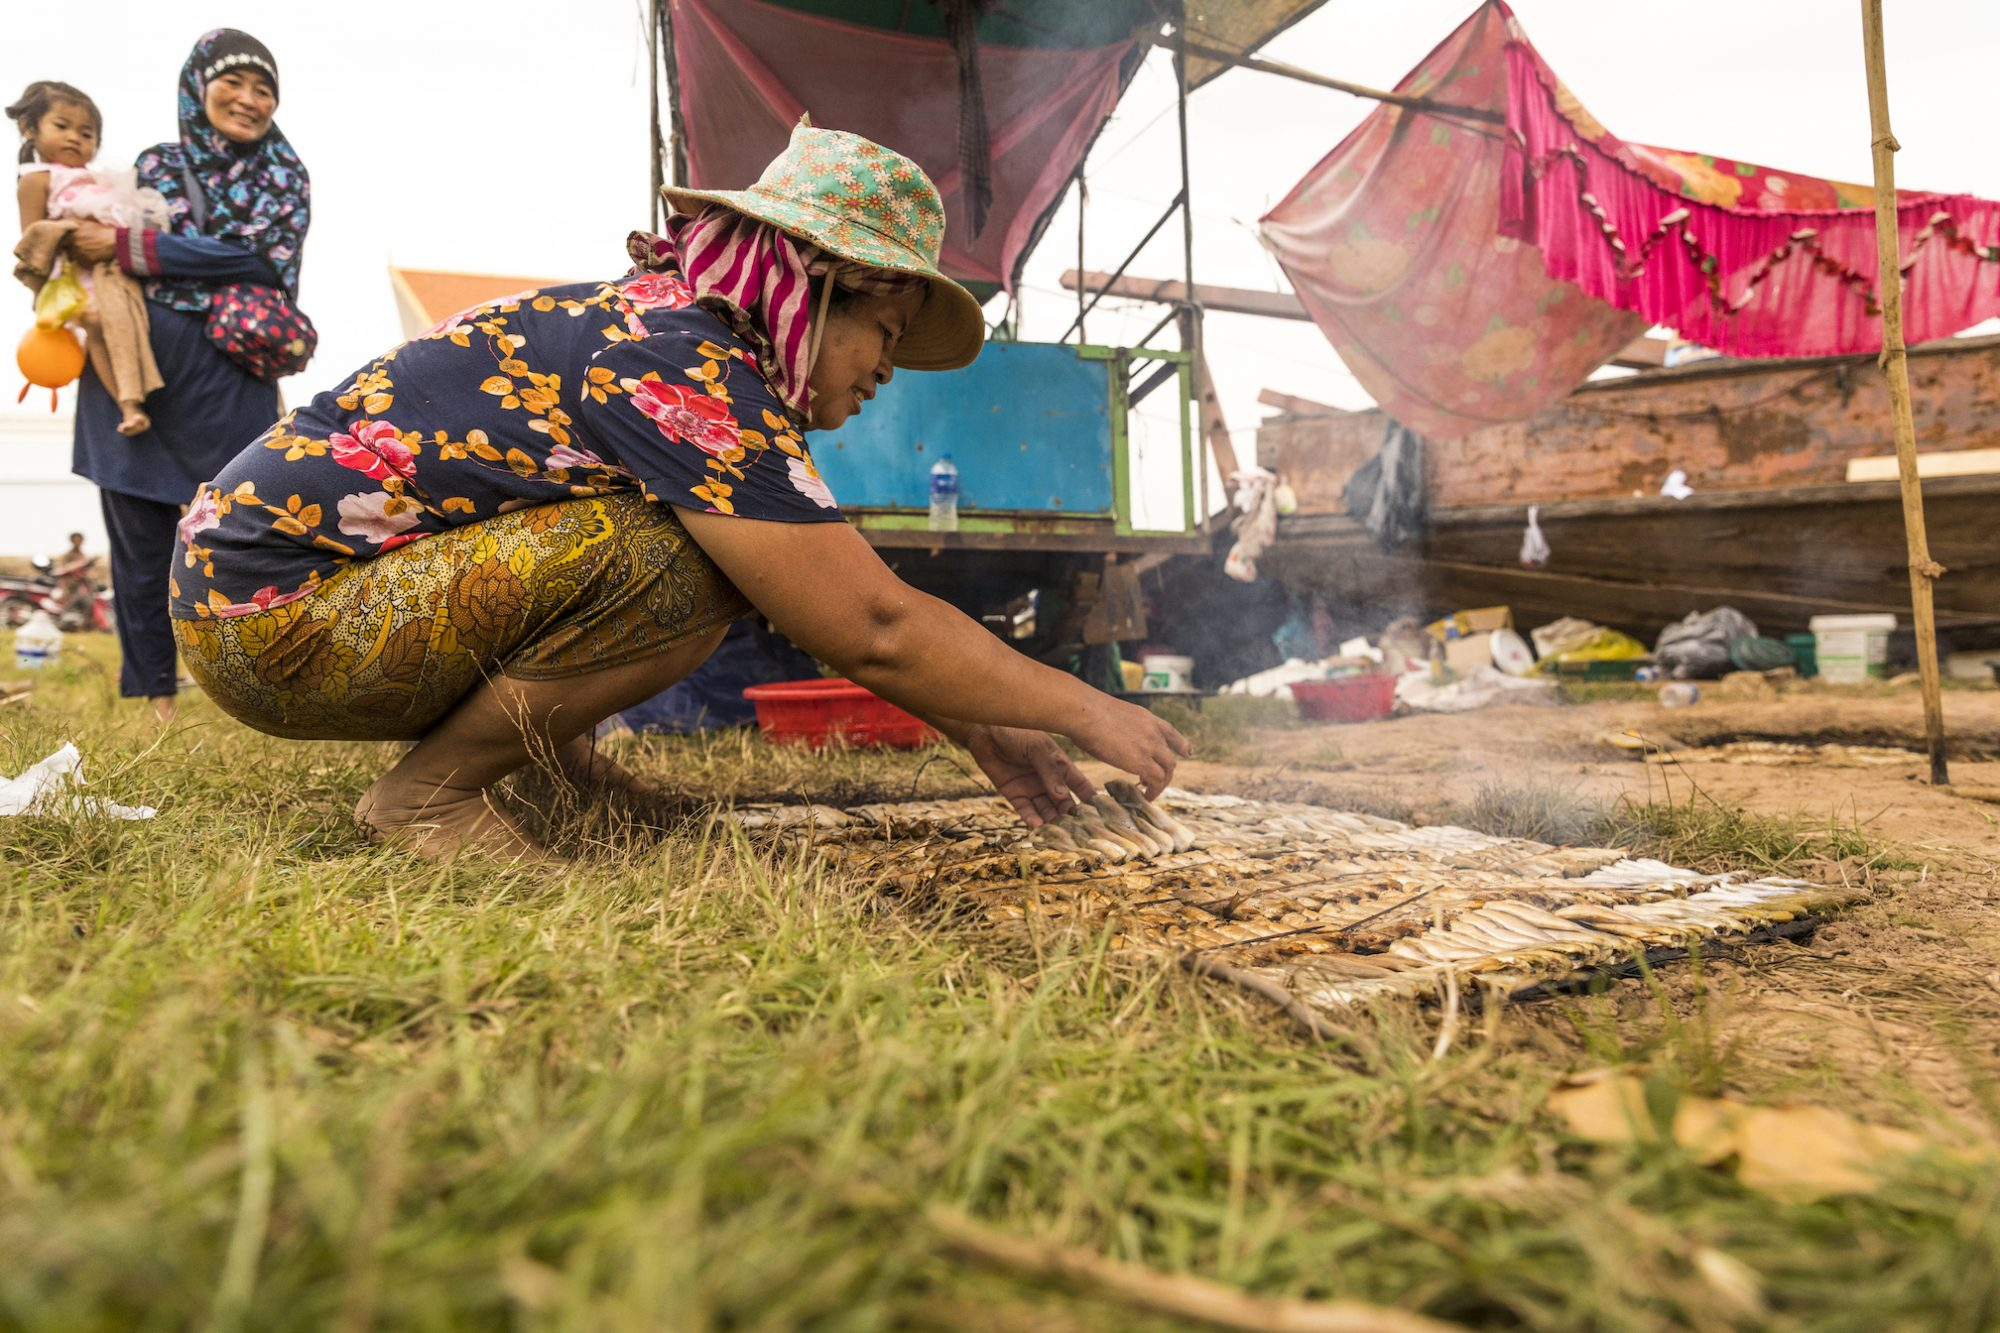 A woman cooks rows of small fish on the ground. An older woman holding a toddler looks on